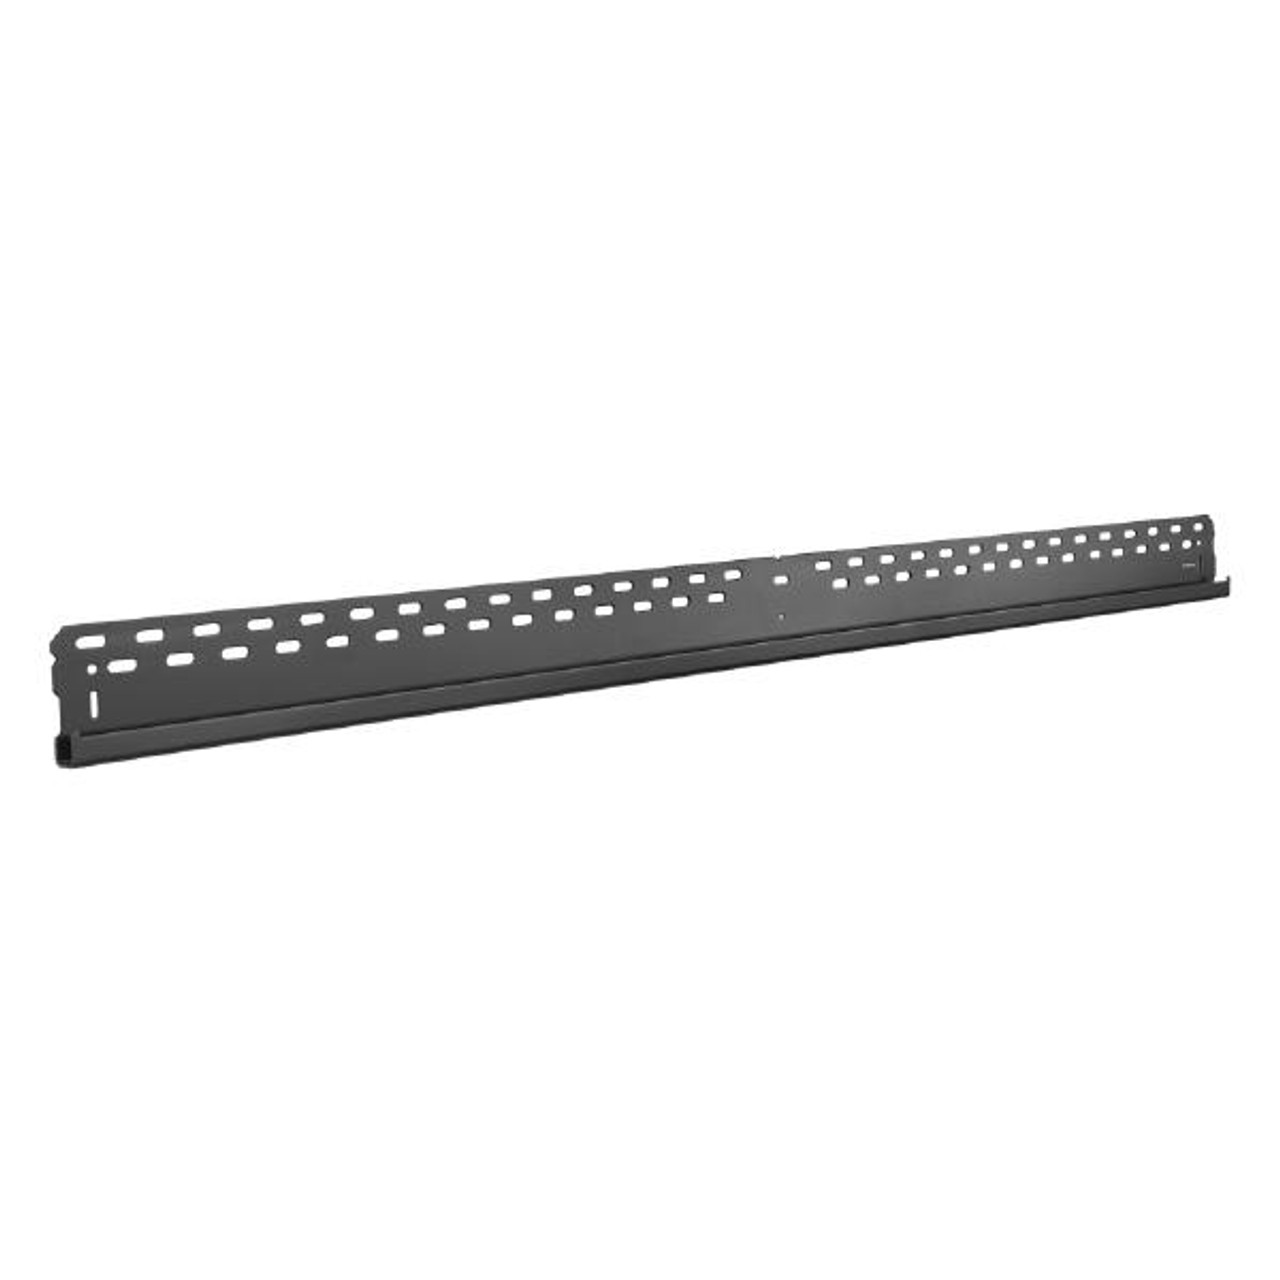 Product image for Atdec Telehook Video Wall Plate - 160cm | CX Computer Superstore